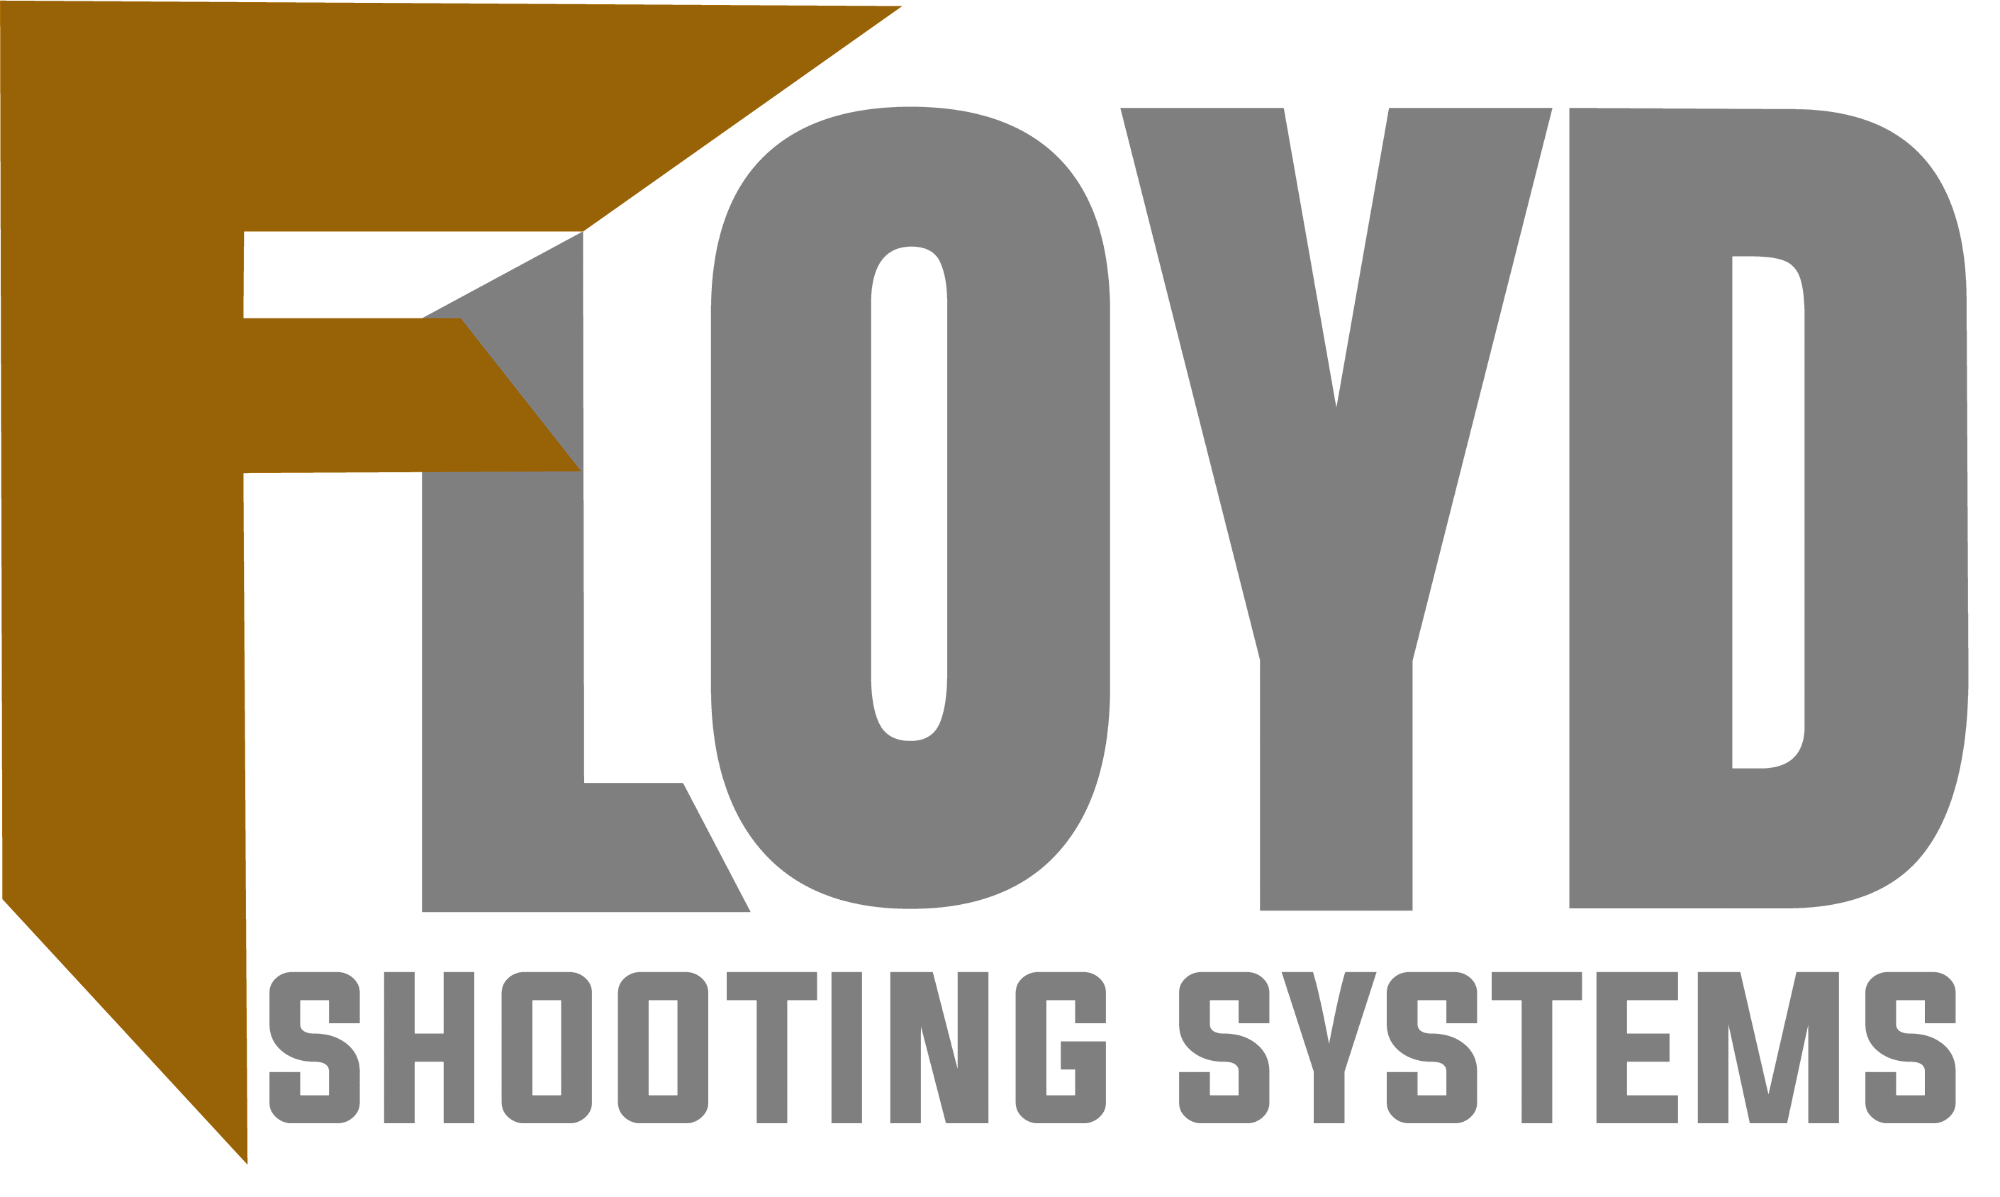 shooting systems